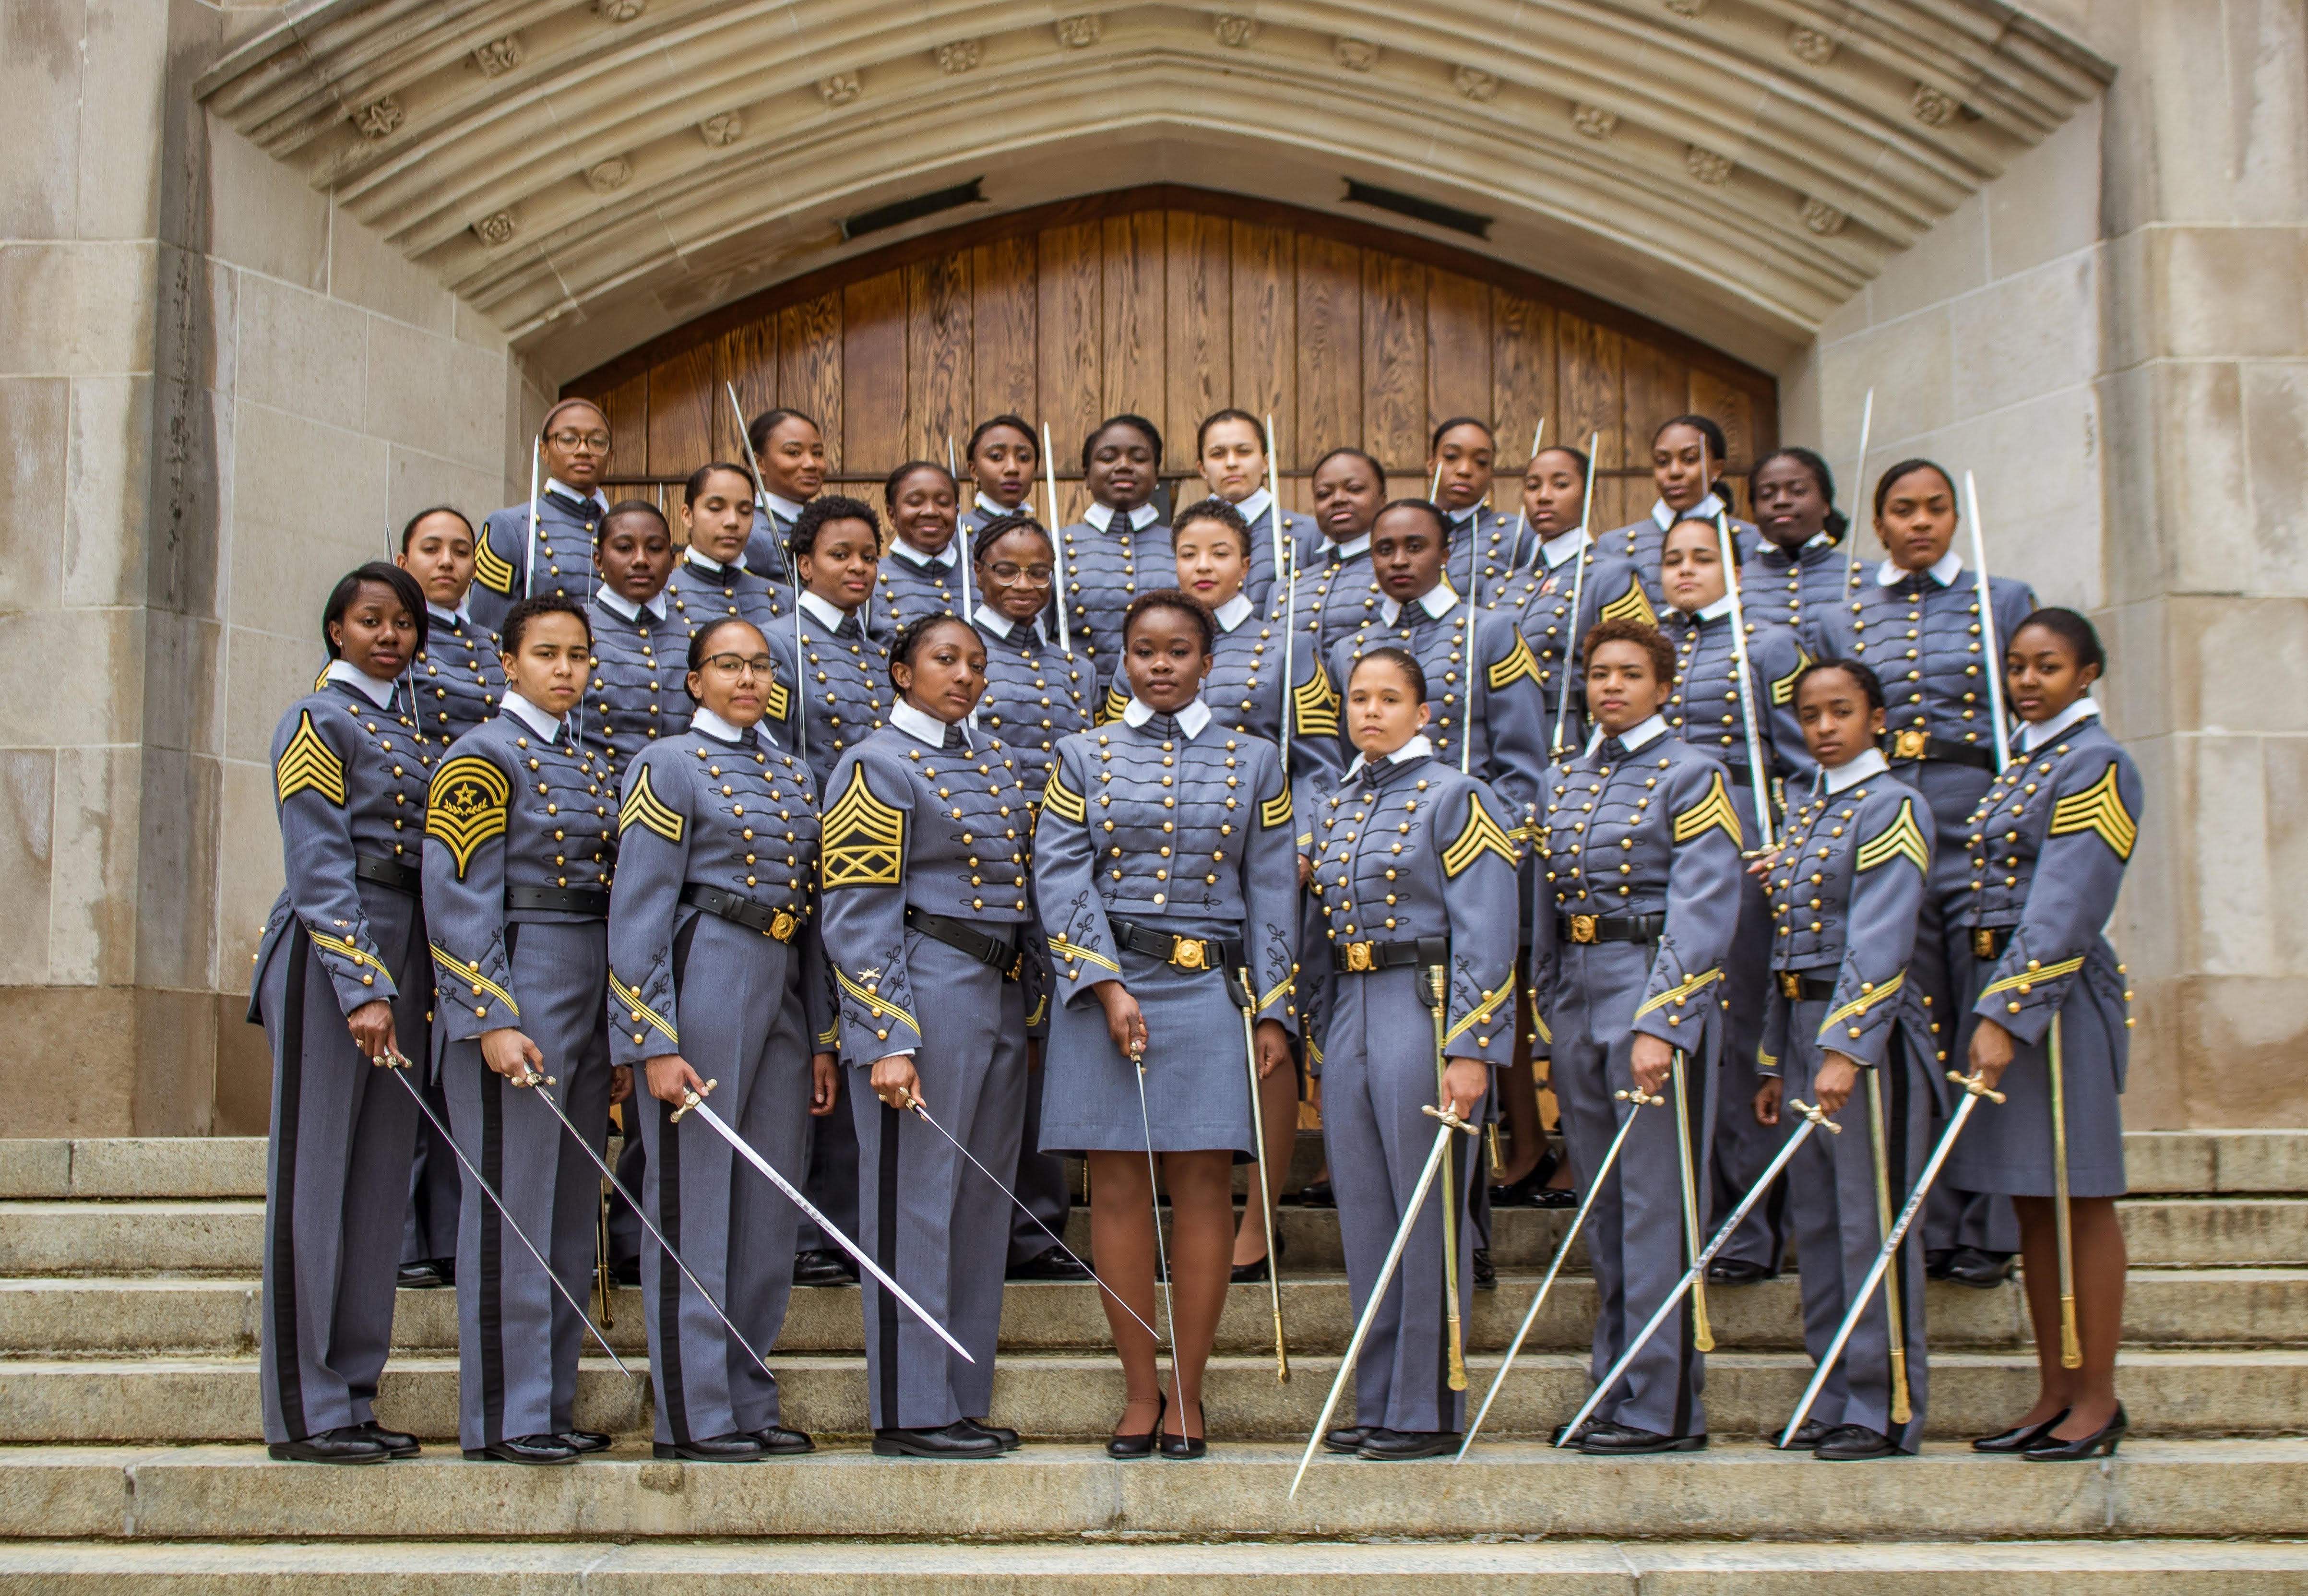 Cadet Gray: A Pictorial History of Life at West Point as Seen Through its Uniforms